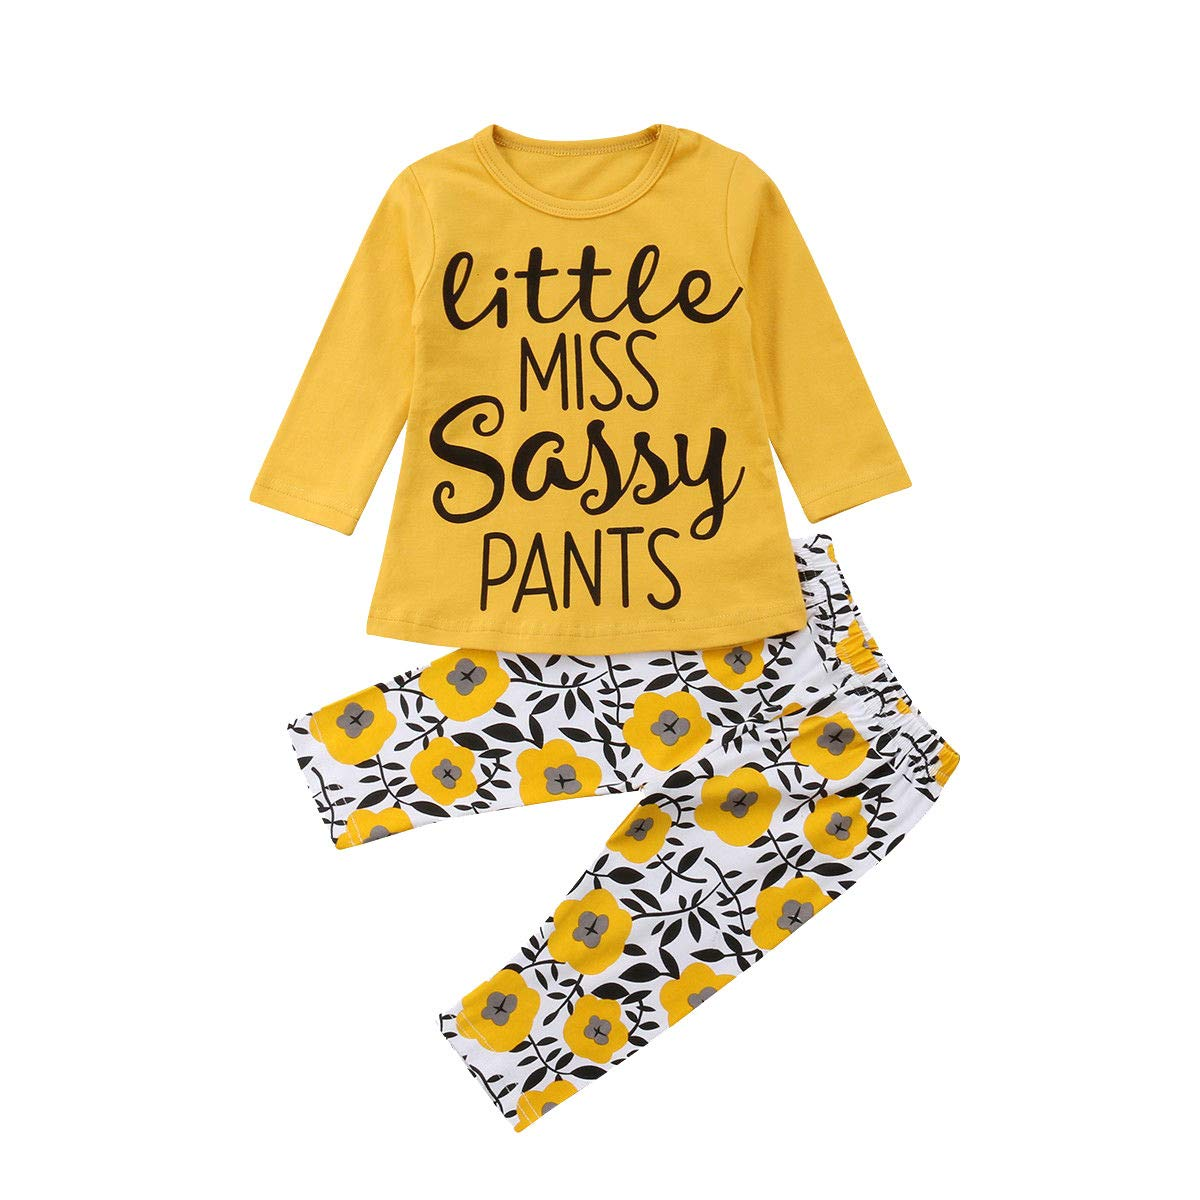 Ankola 2PCs Set Toddler Infant Baby Girls Letter Print''Little Miss Sassy Pants'' Long Sleeve Tops Floral Pants Outfit Set (12-18 Months, Yellow)